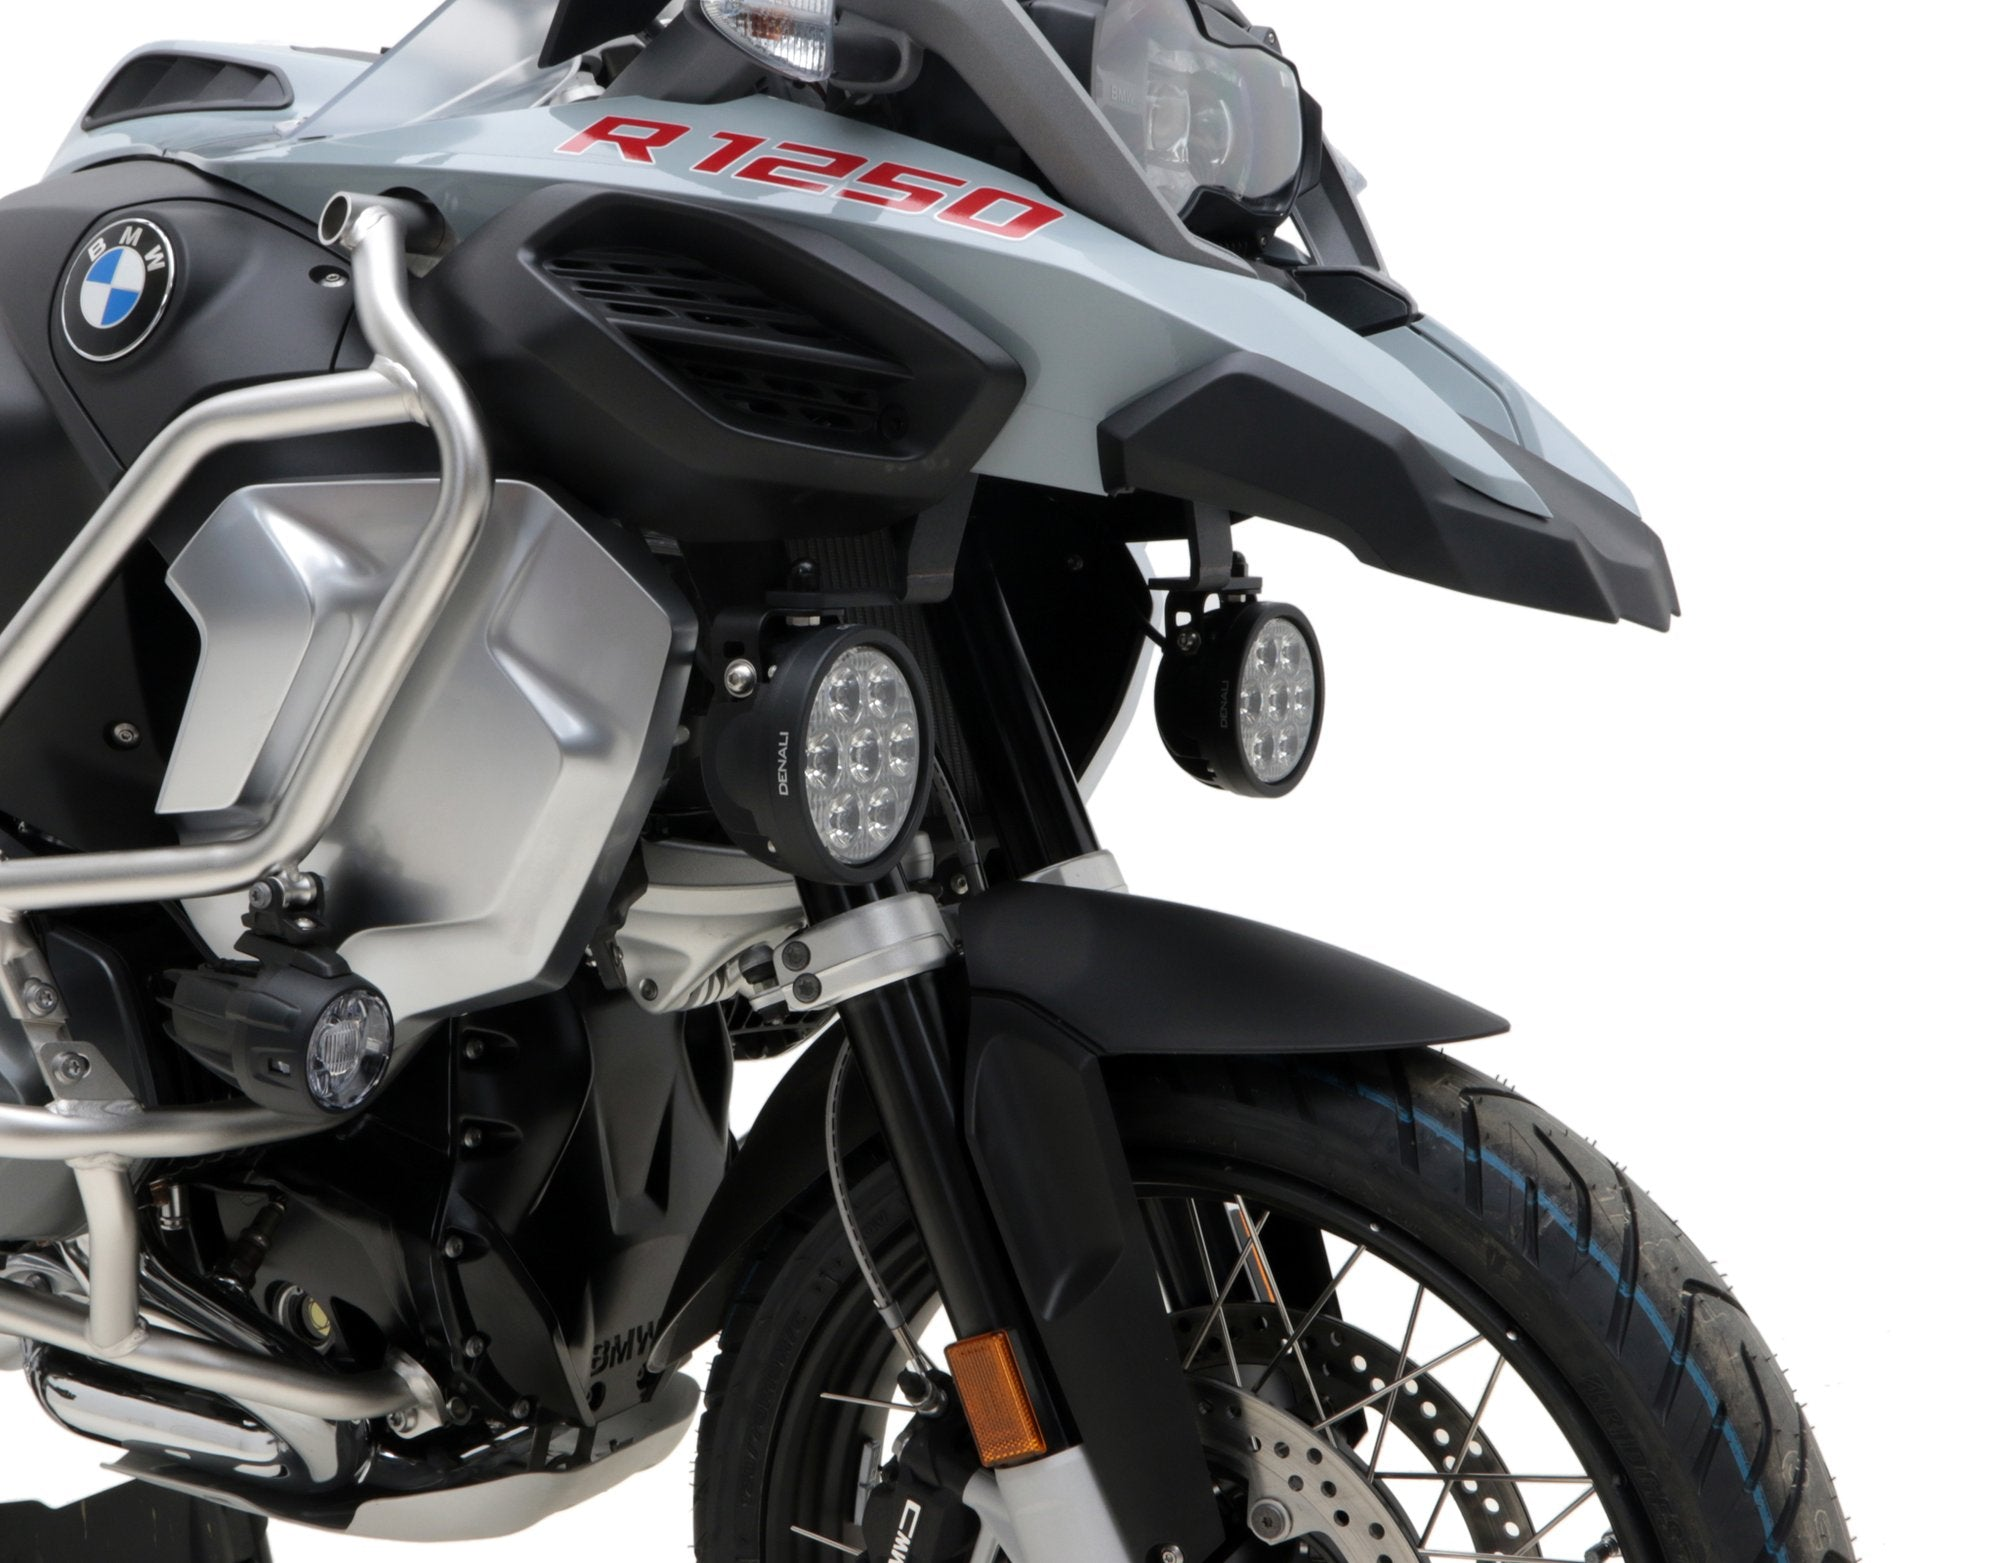 Denali - Soporte de luces - BMW R1250GS Adventure (19-21)